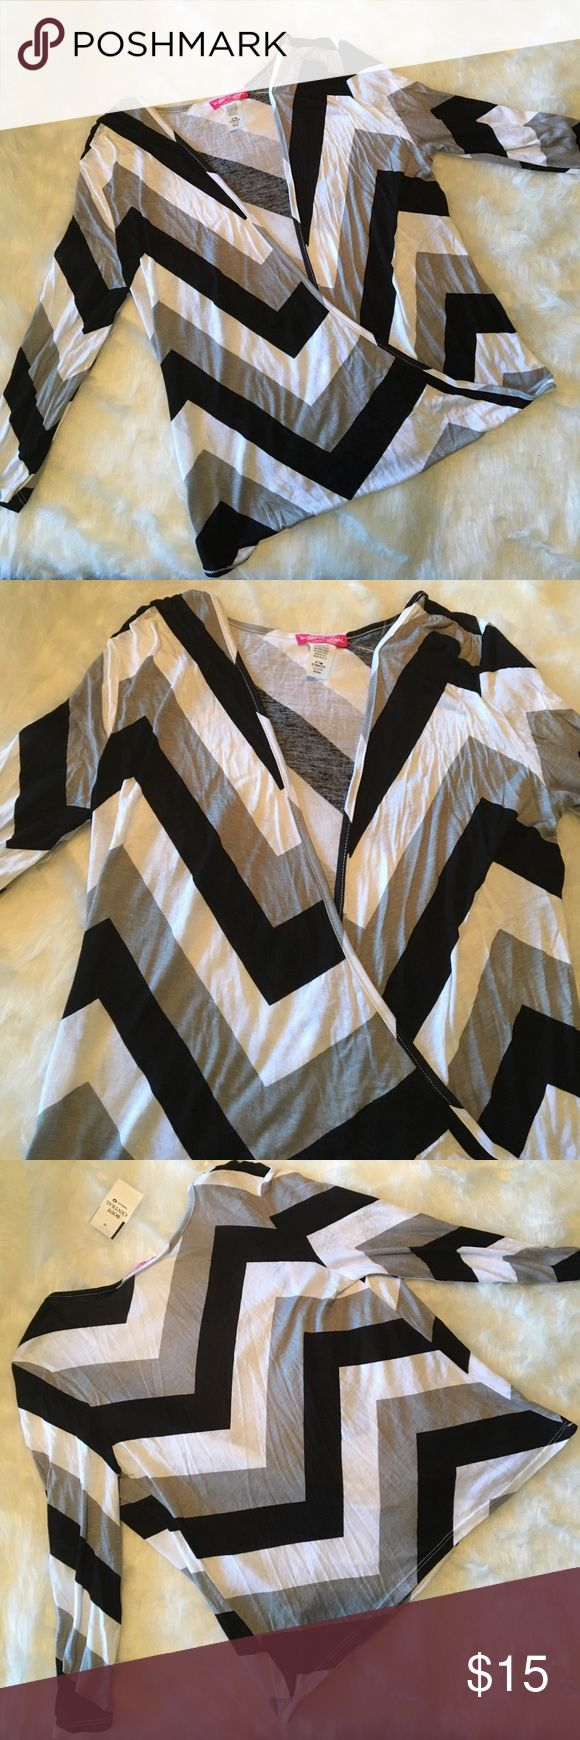 Black gray and white chevron drape top Three quarter length sleeve Blouse with drape v neck front. Body Central Tops Blouses